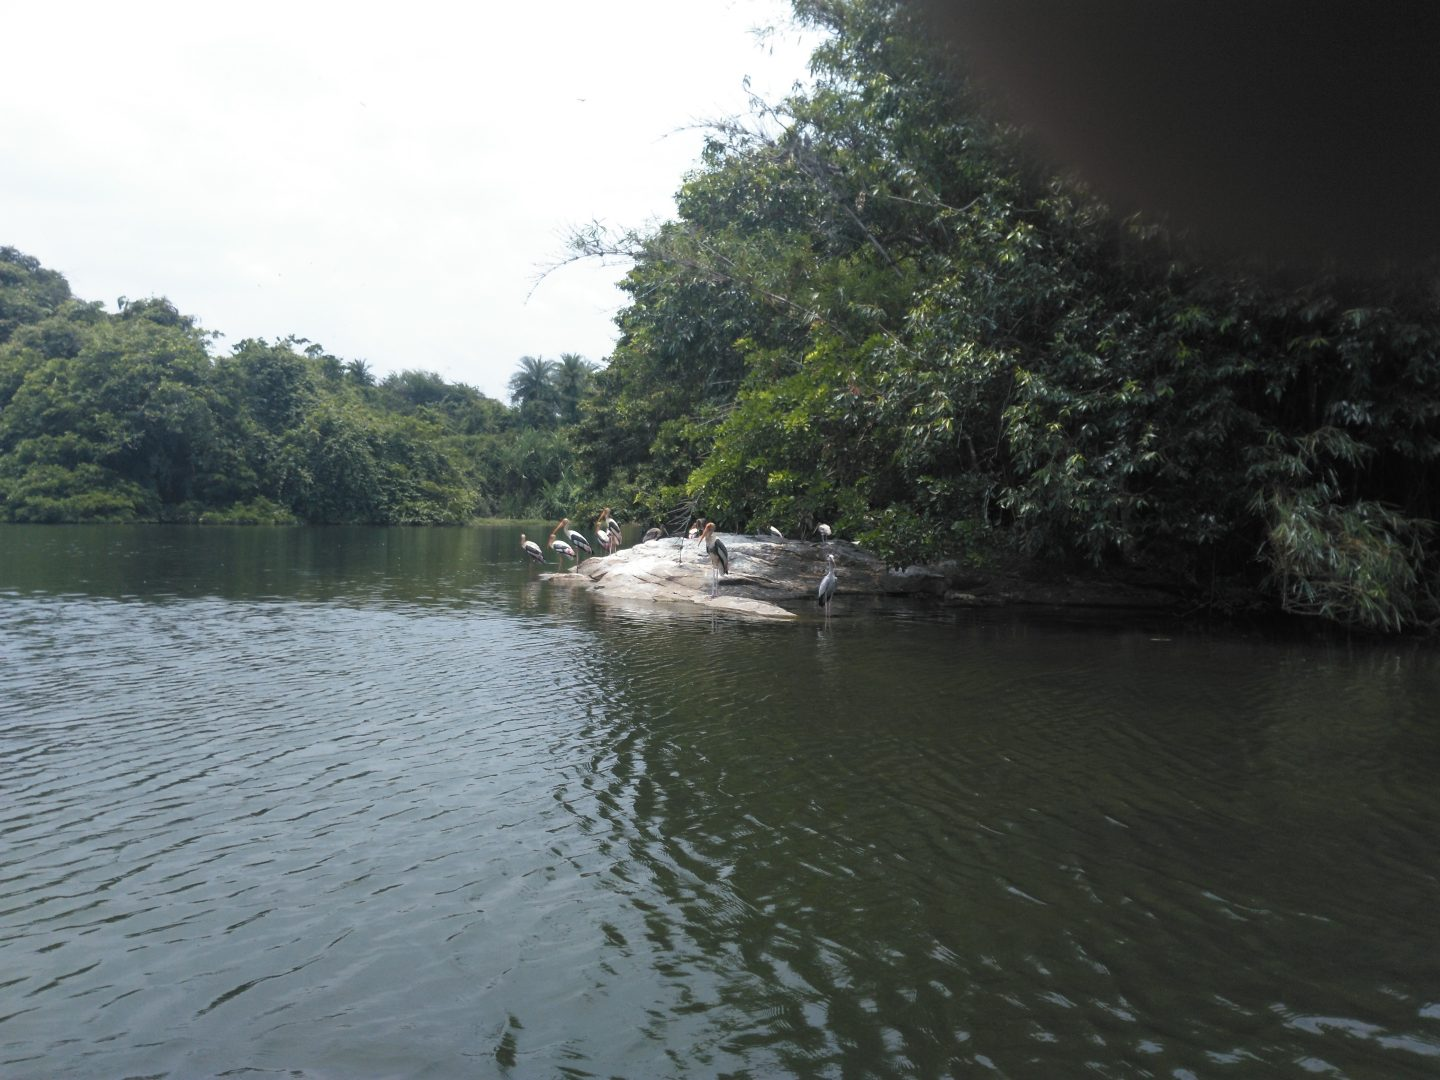 Ranganatitu Bird Sanctuary